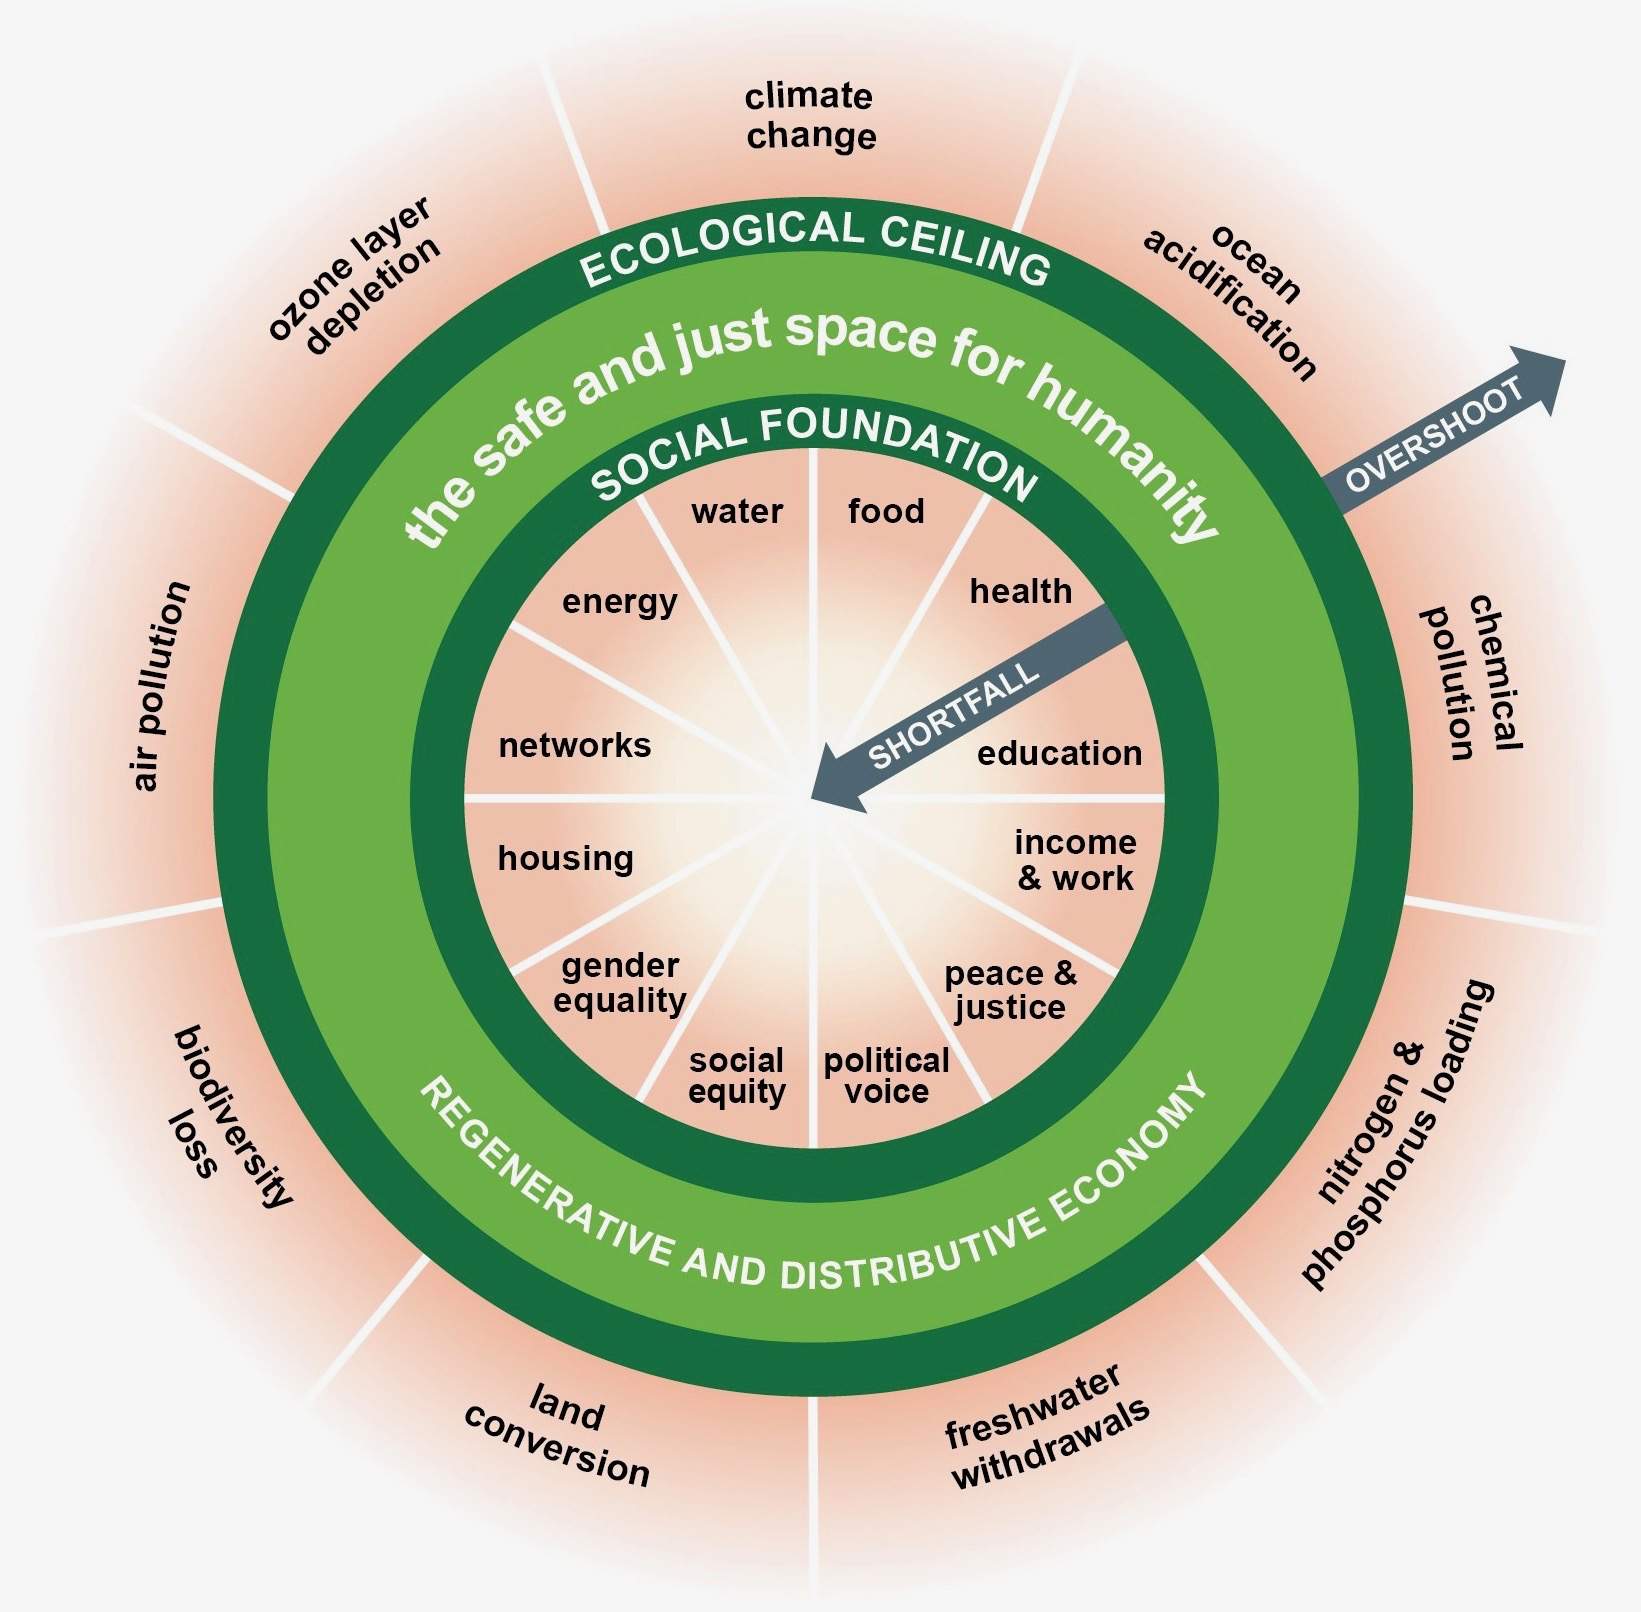 Kate Raworth's Doughnut of social and planetary boundaries